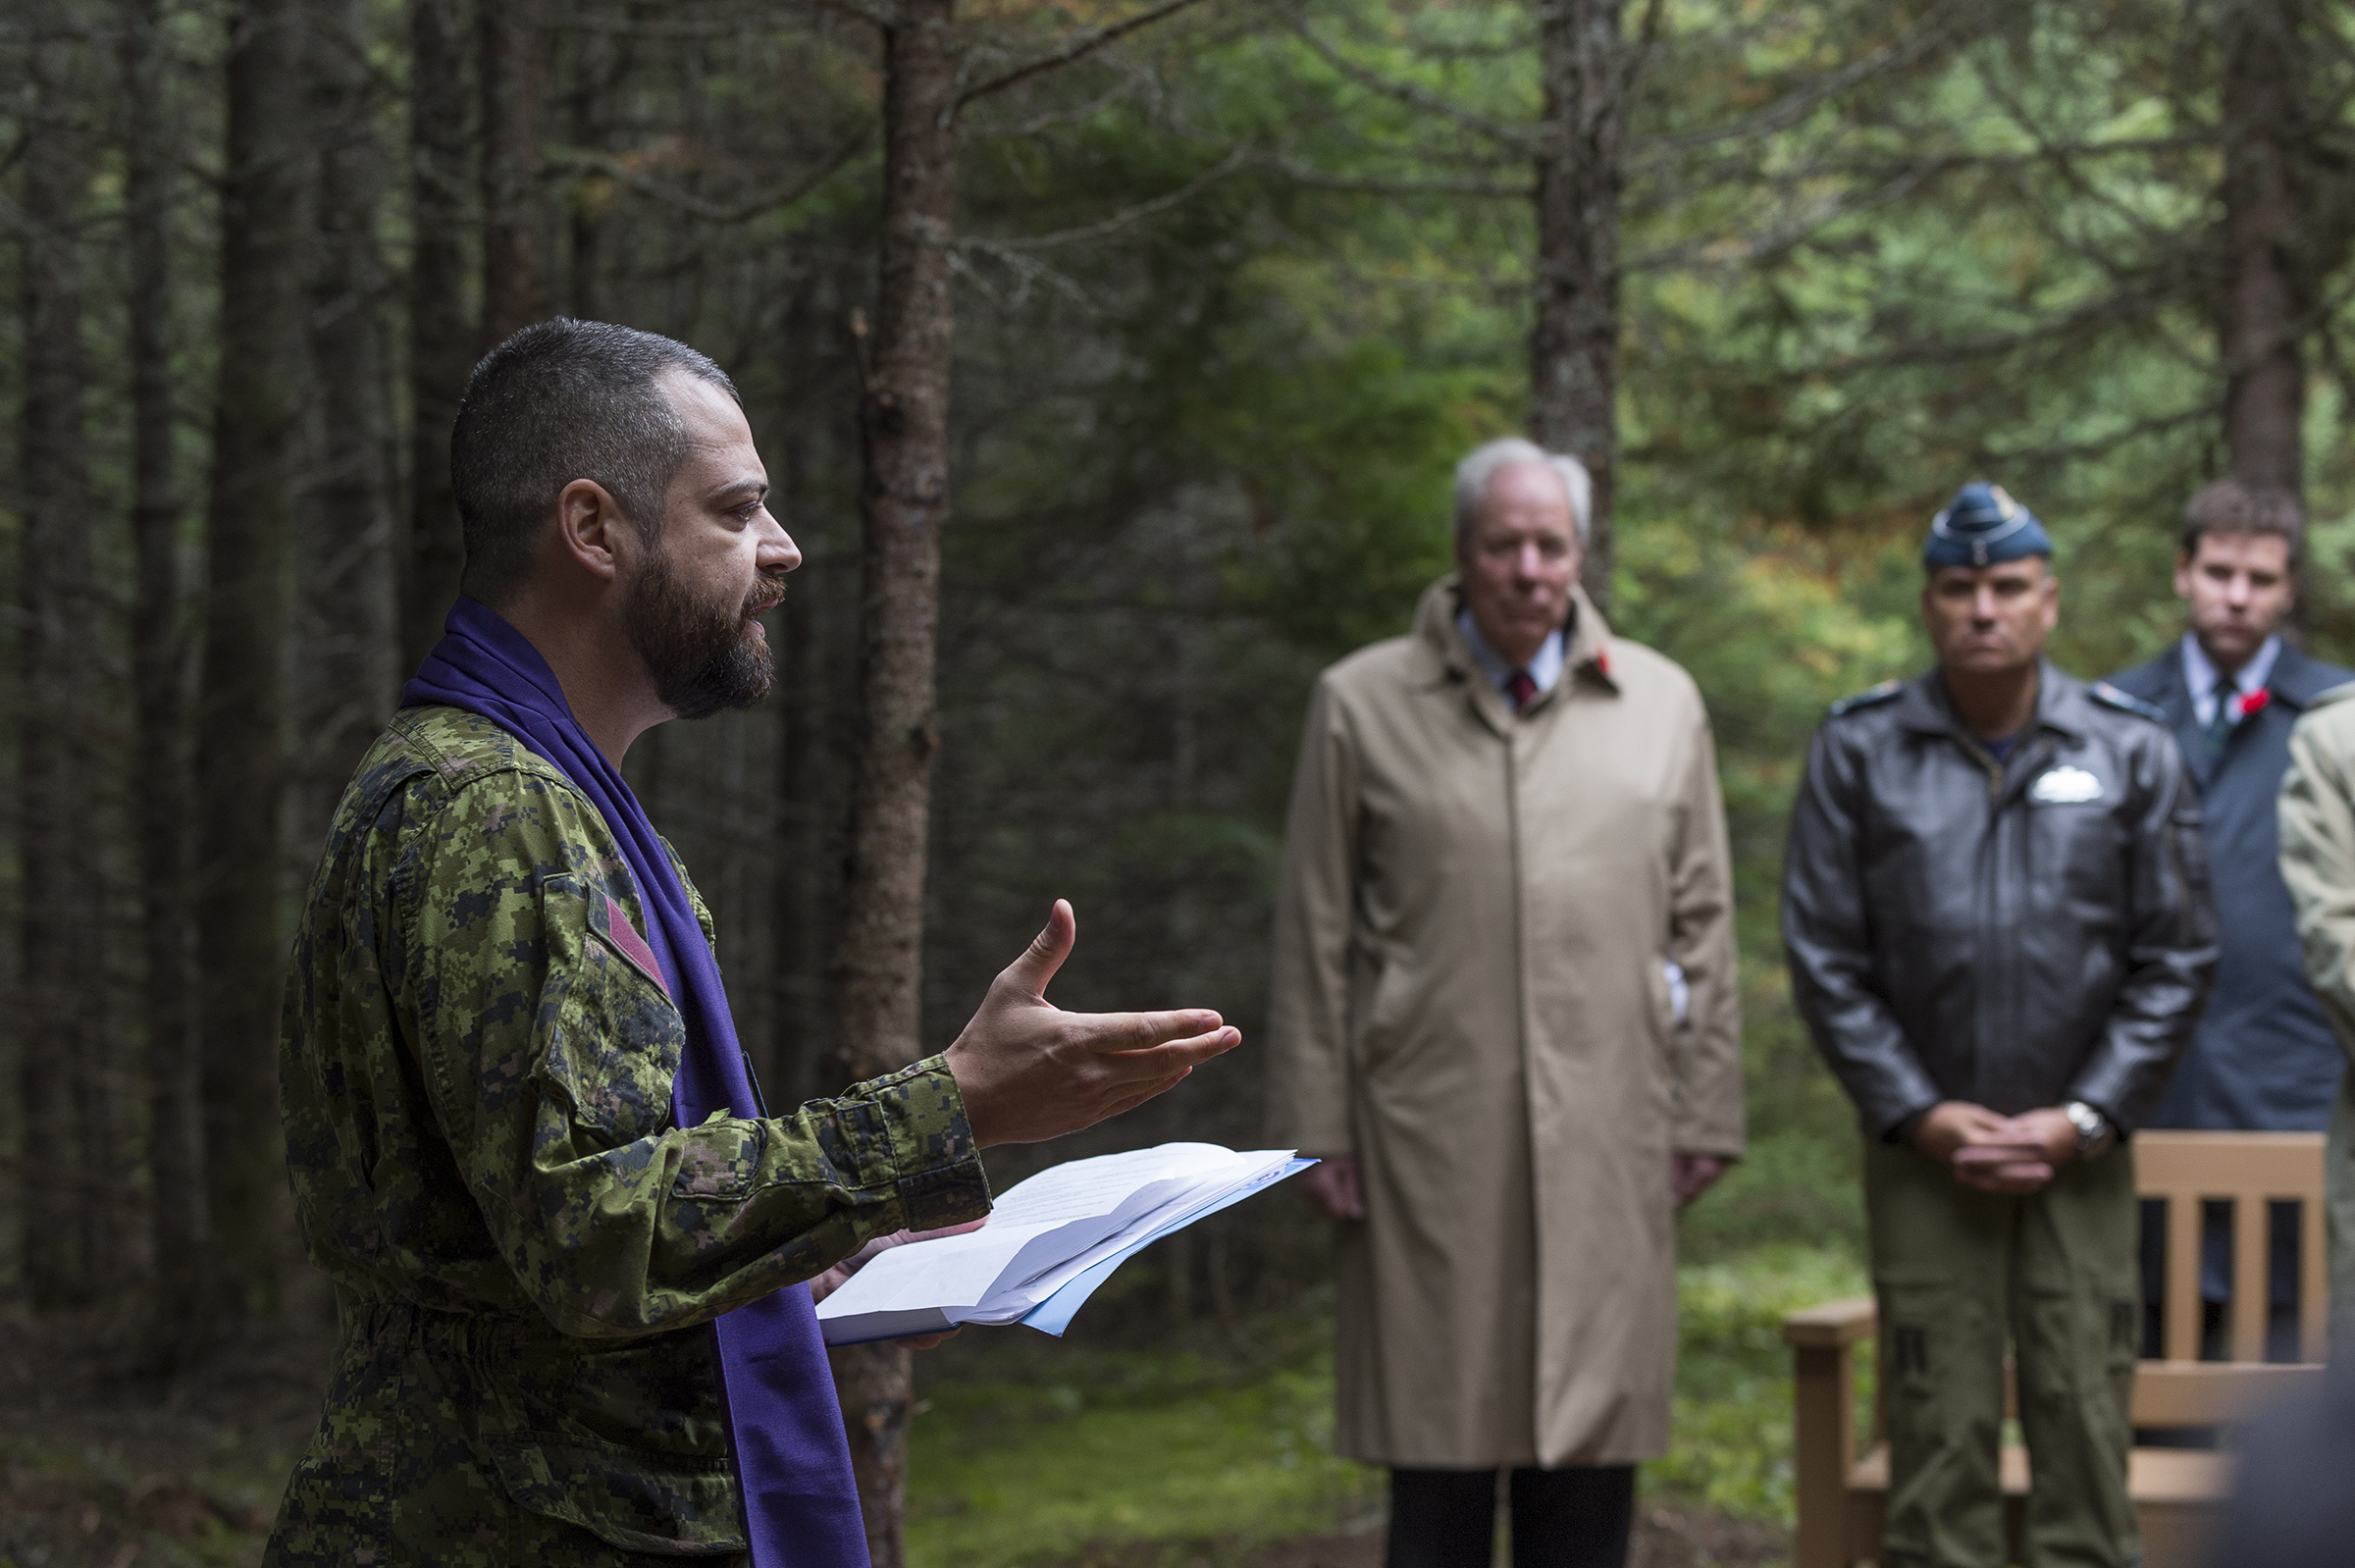 On September 14, 2019, Captain Jacques Tremblay, chaplain for 5 Canadian Division Support Group Gagetown, offers prayers during the unveiling of a monument commemorating the crash of Northrop Delta 673, which claimed the lives of Warrant Officer Class 2 James Edward Doan and Corporal David Alexander Rennie near Plaster Rock, New Brunswick, exactly 80 years before. PHOTO: Corporal Nicolas Alonso, GN02-2019-0949-010